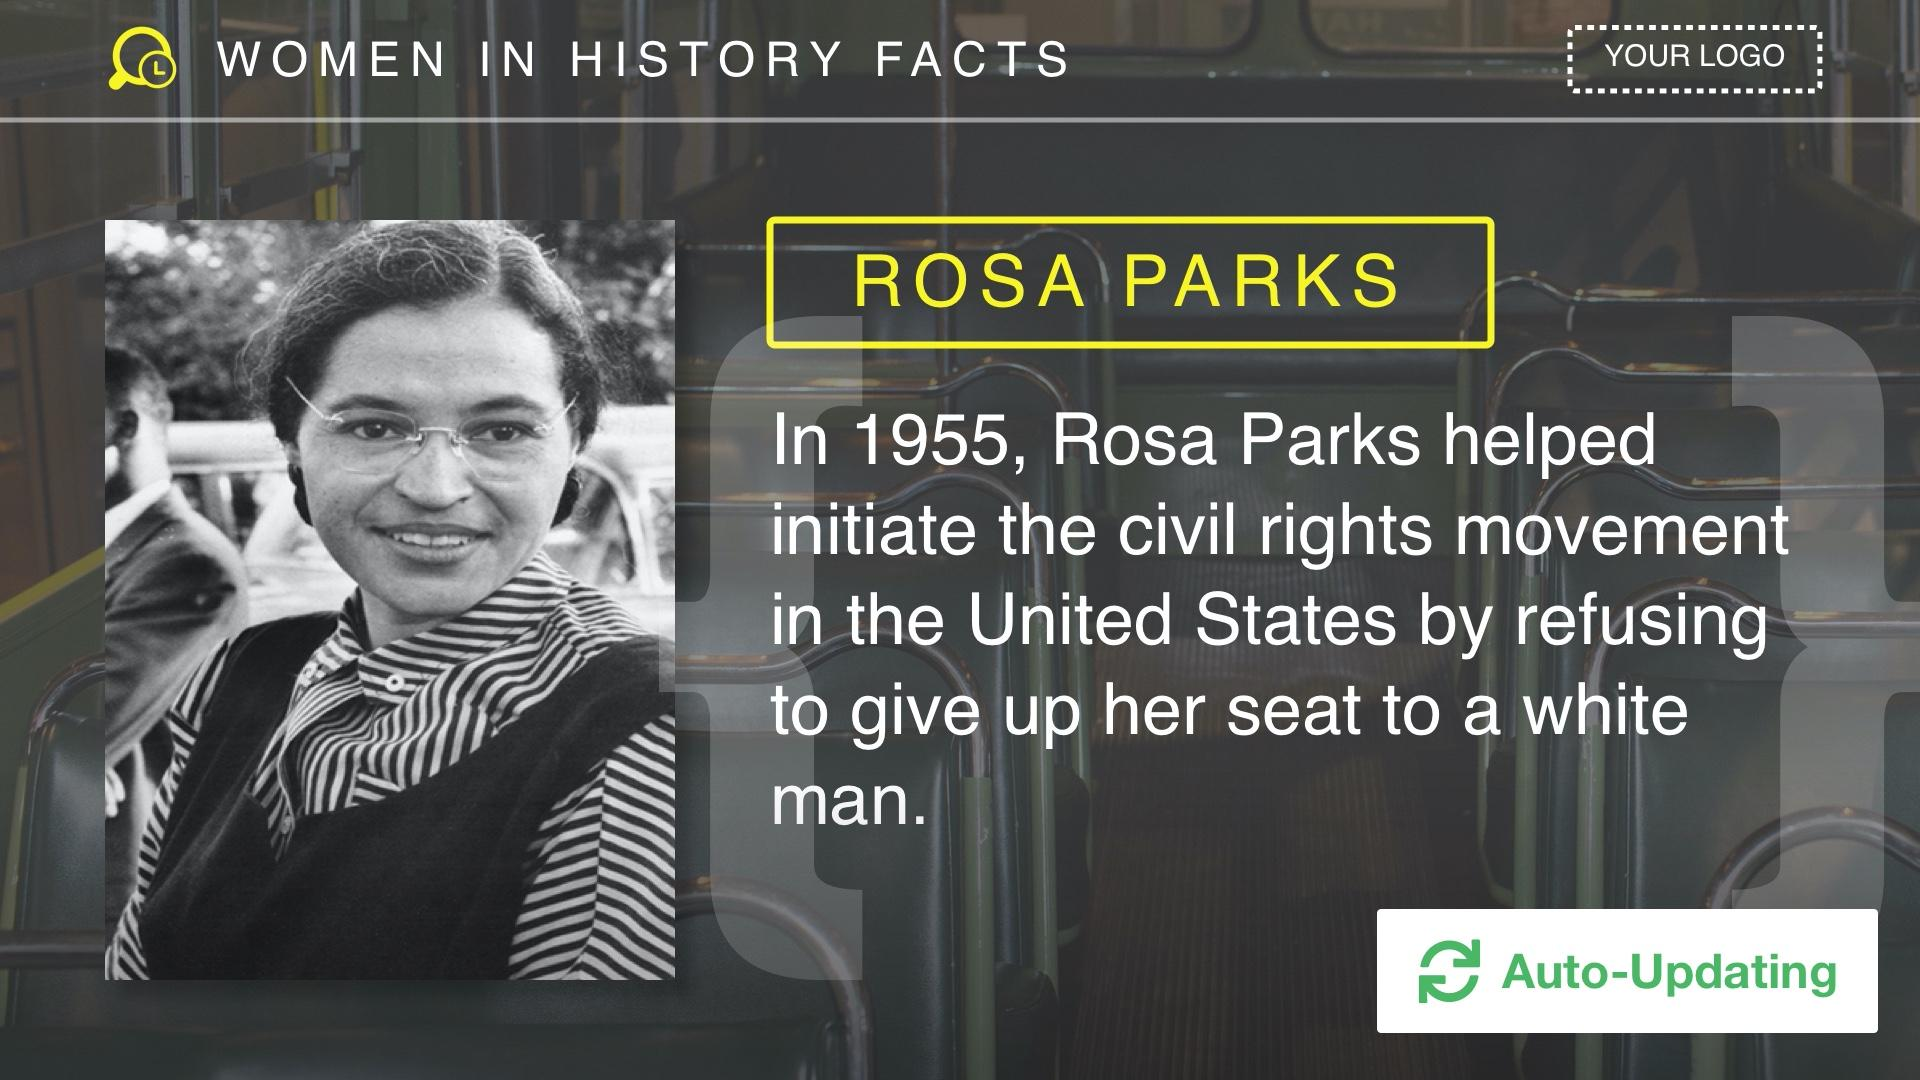 Famous Women in History Digital Signage Template